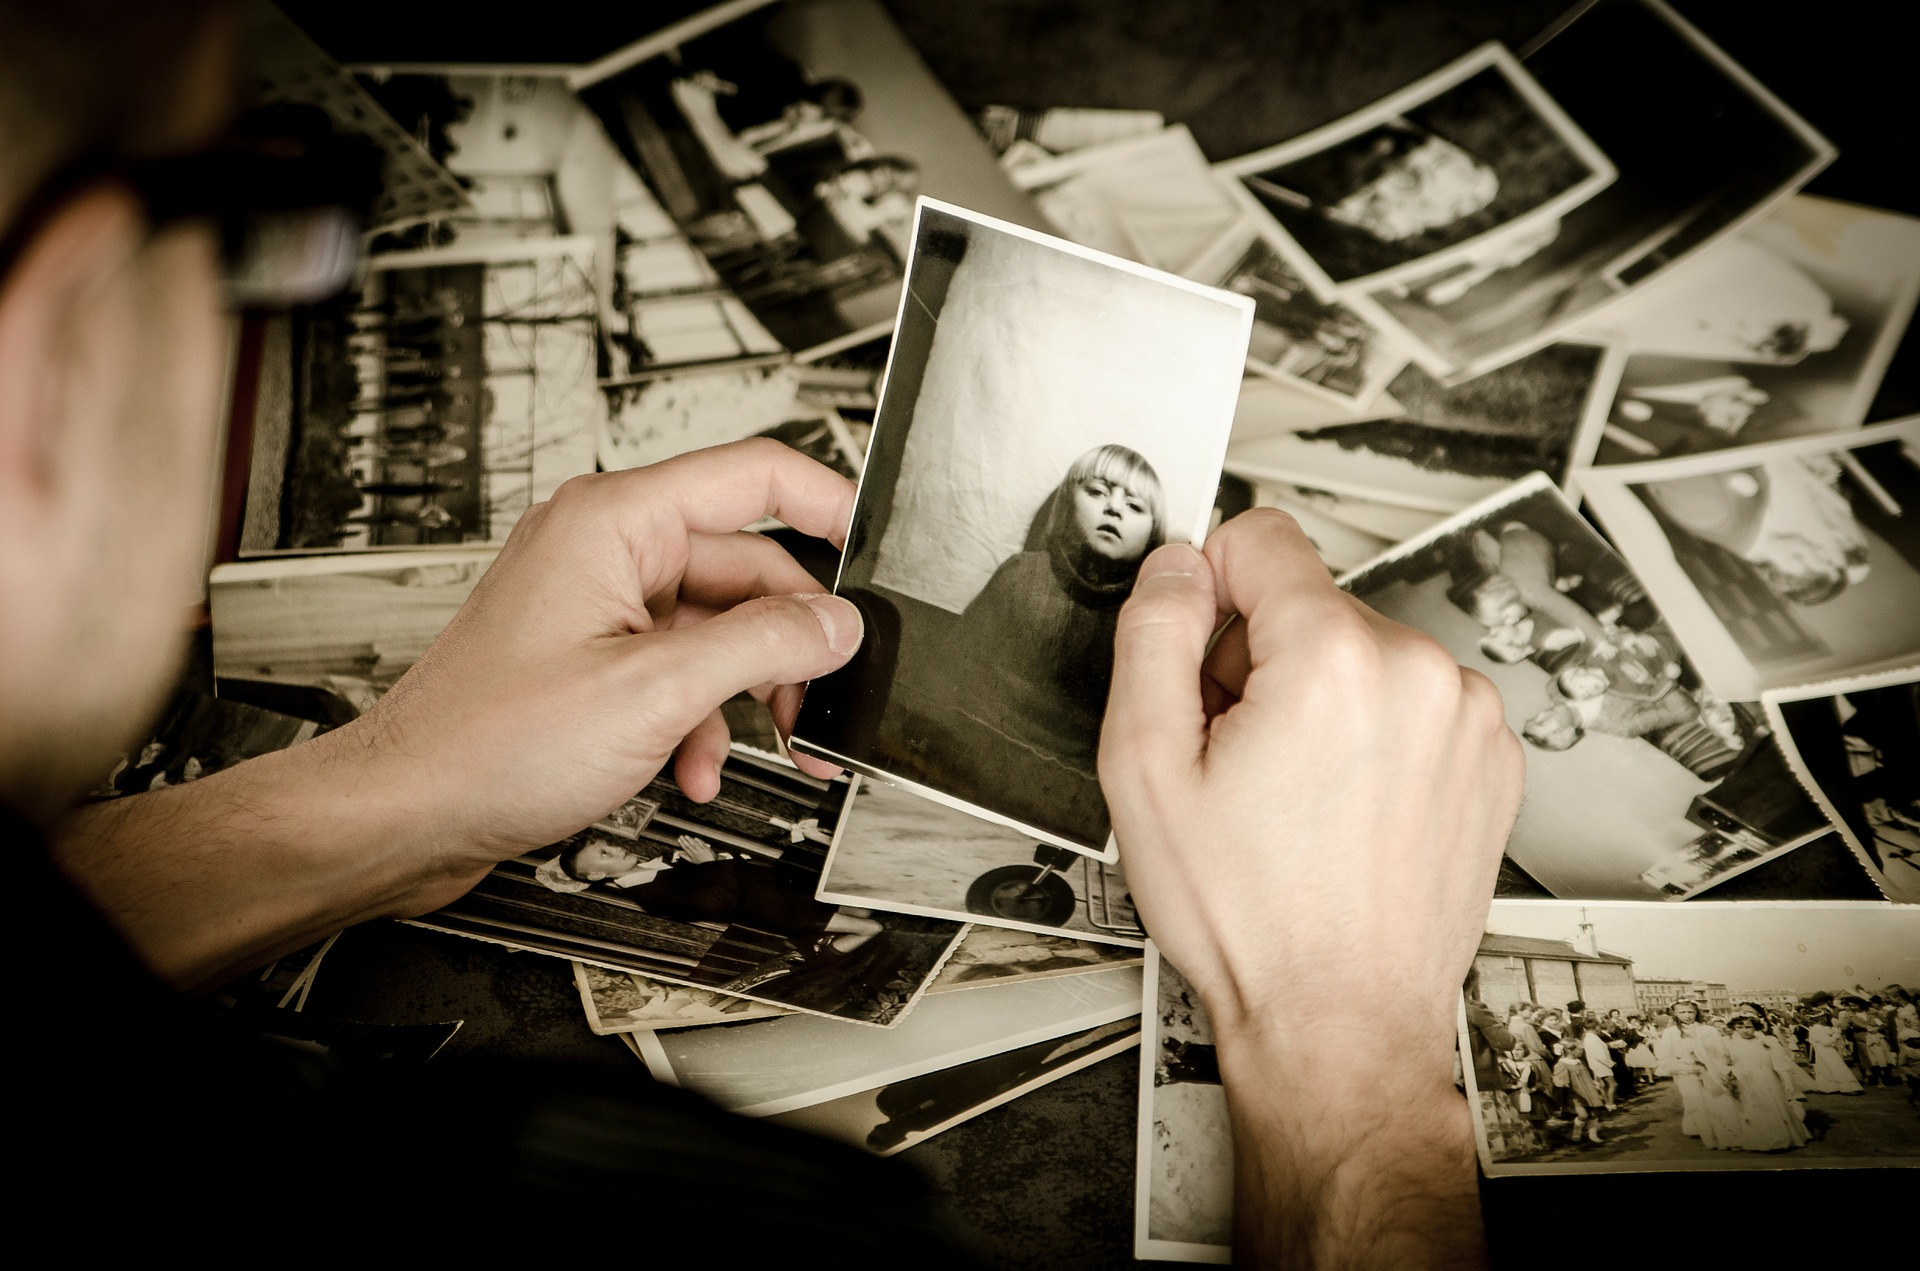 photographs are memories